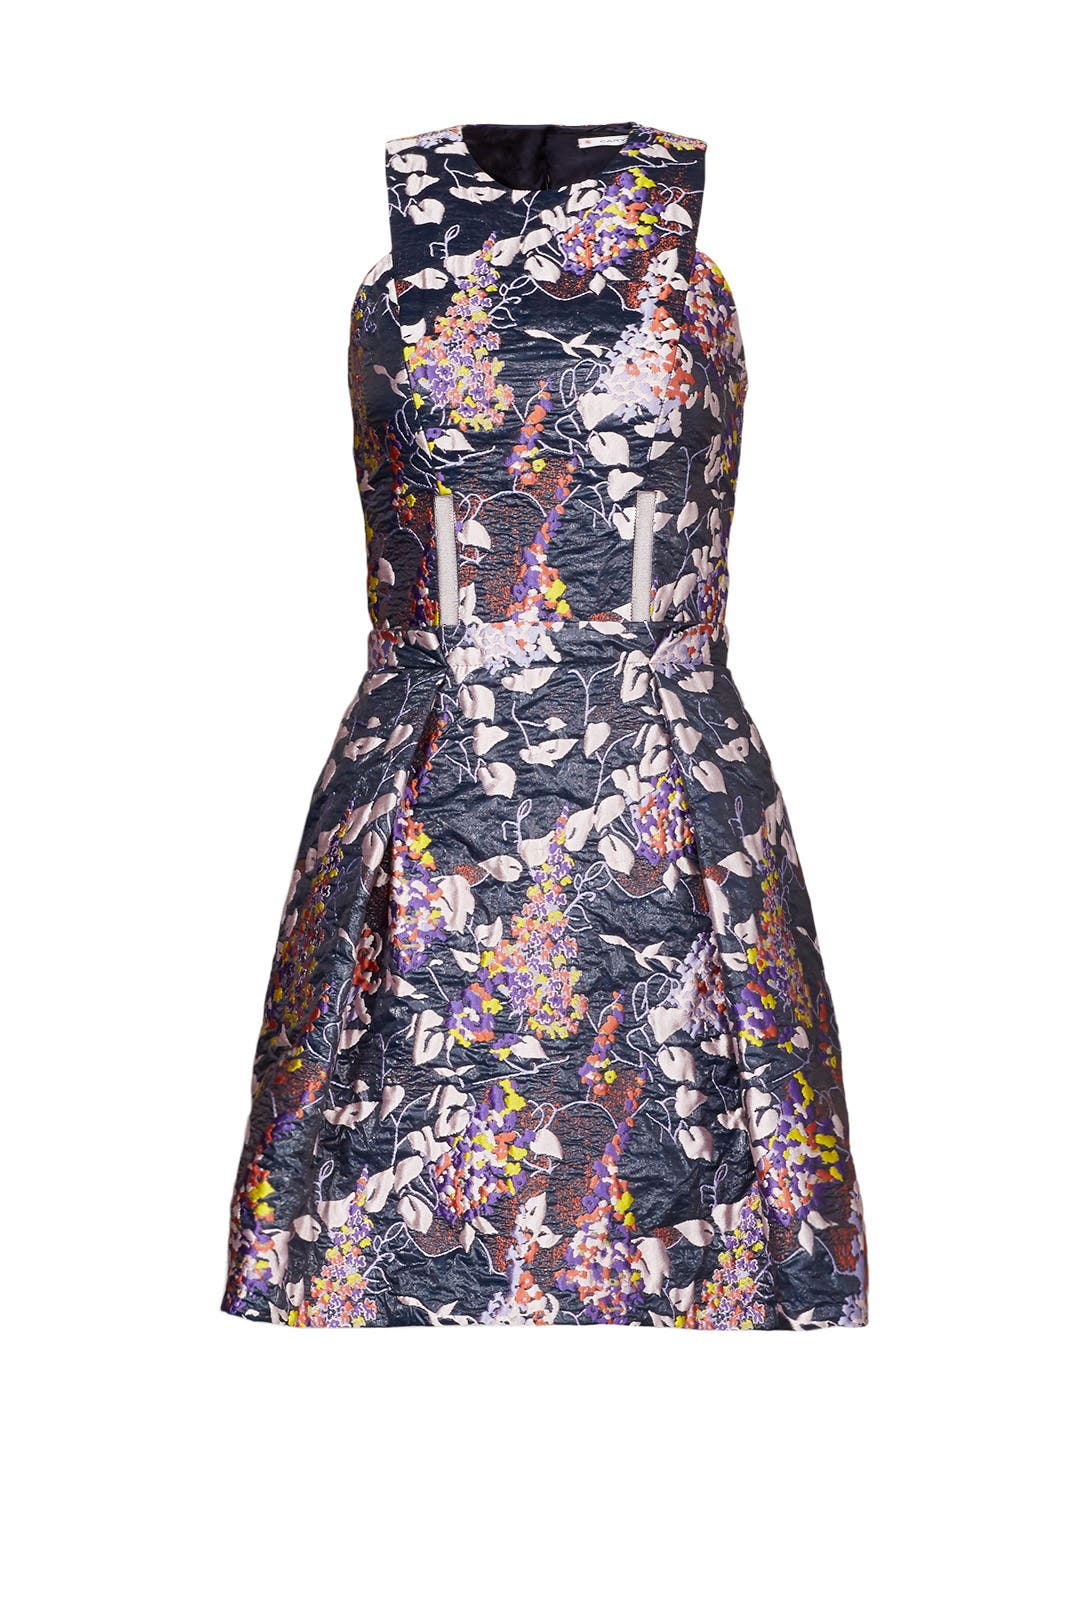 Maxine Dress by Carven for $150 | Rent the Runway